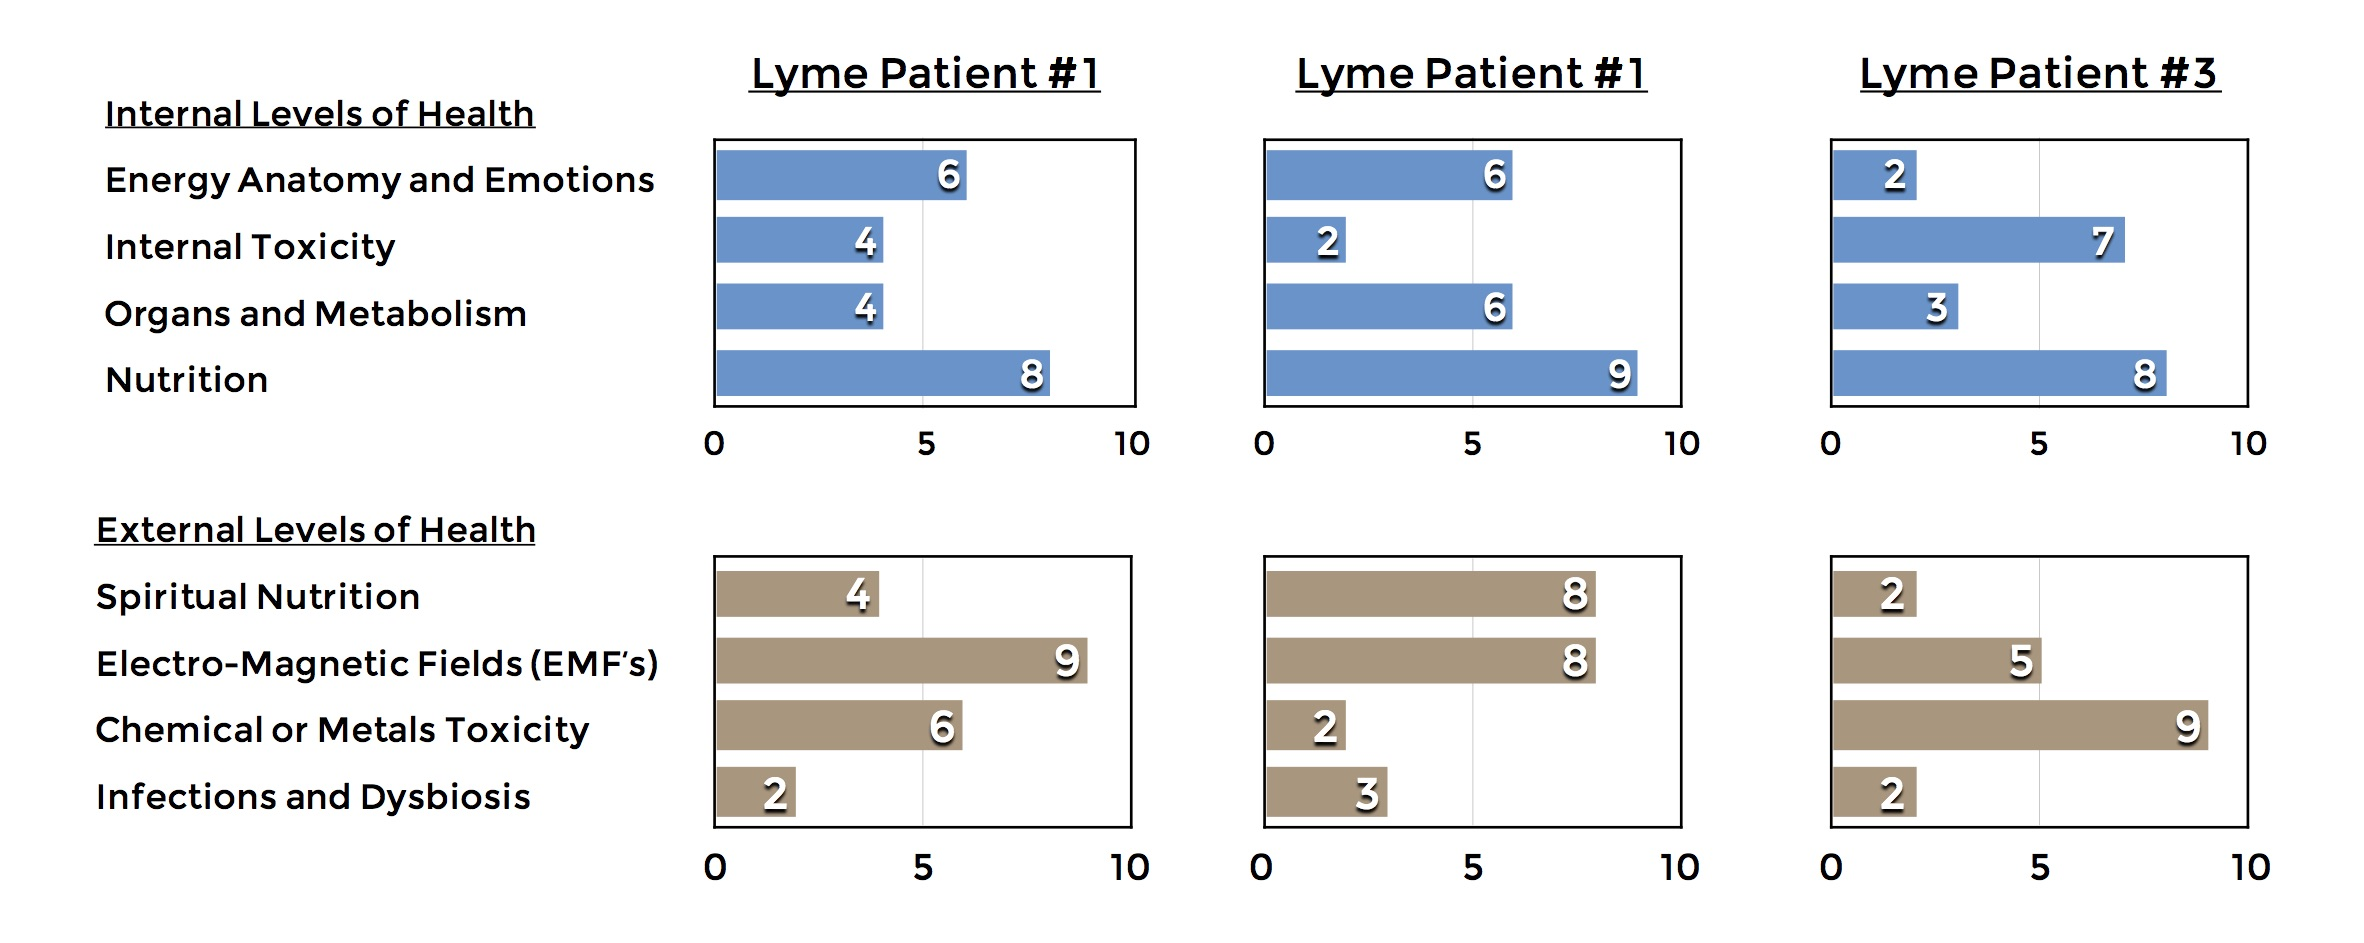 bah-lyme-disease-comparison-graphs